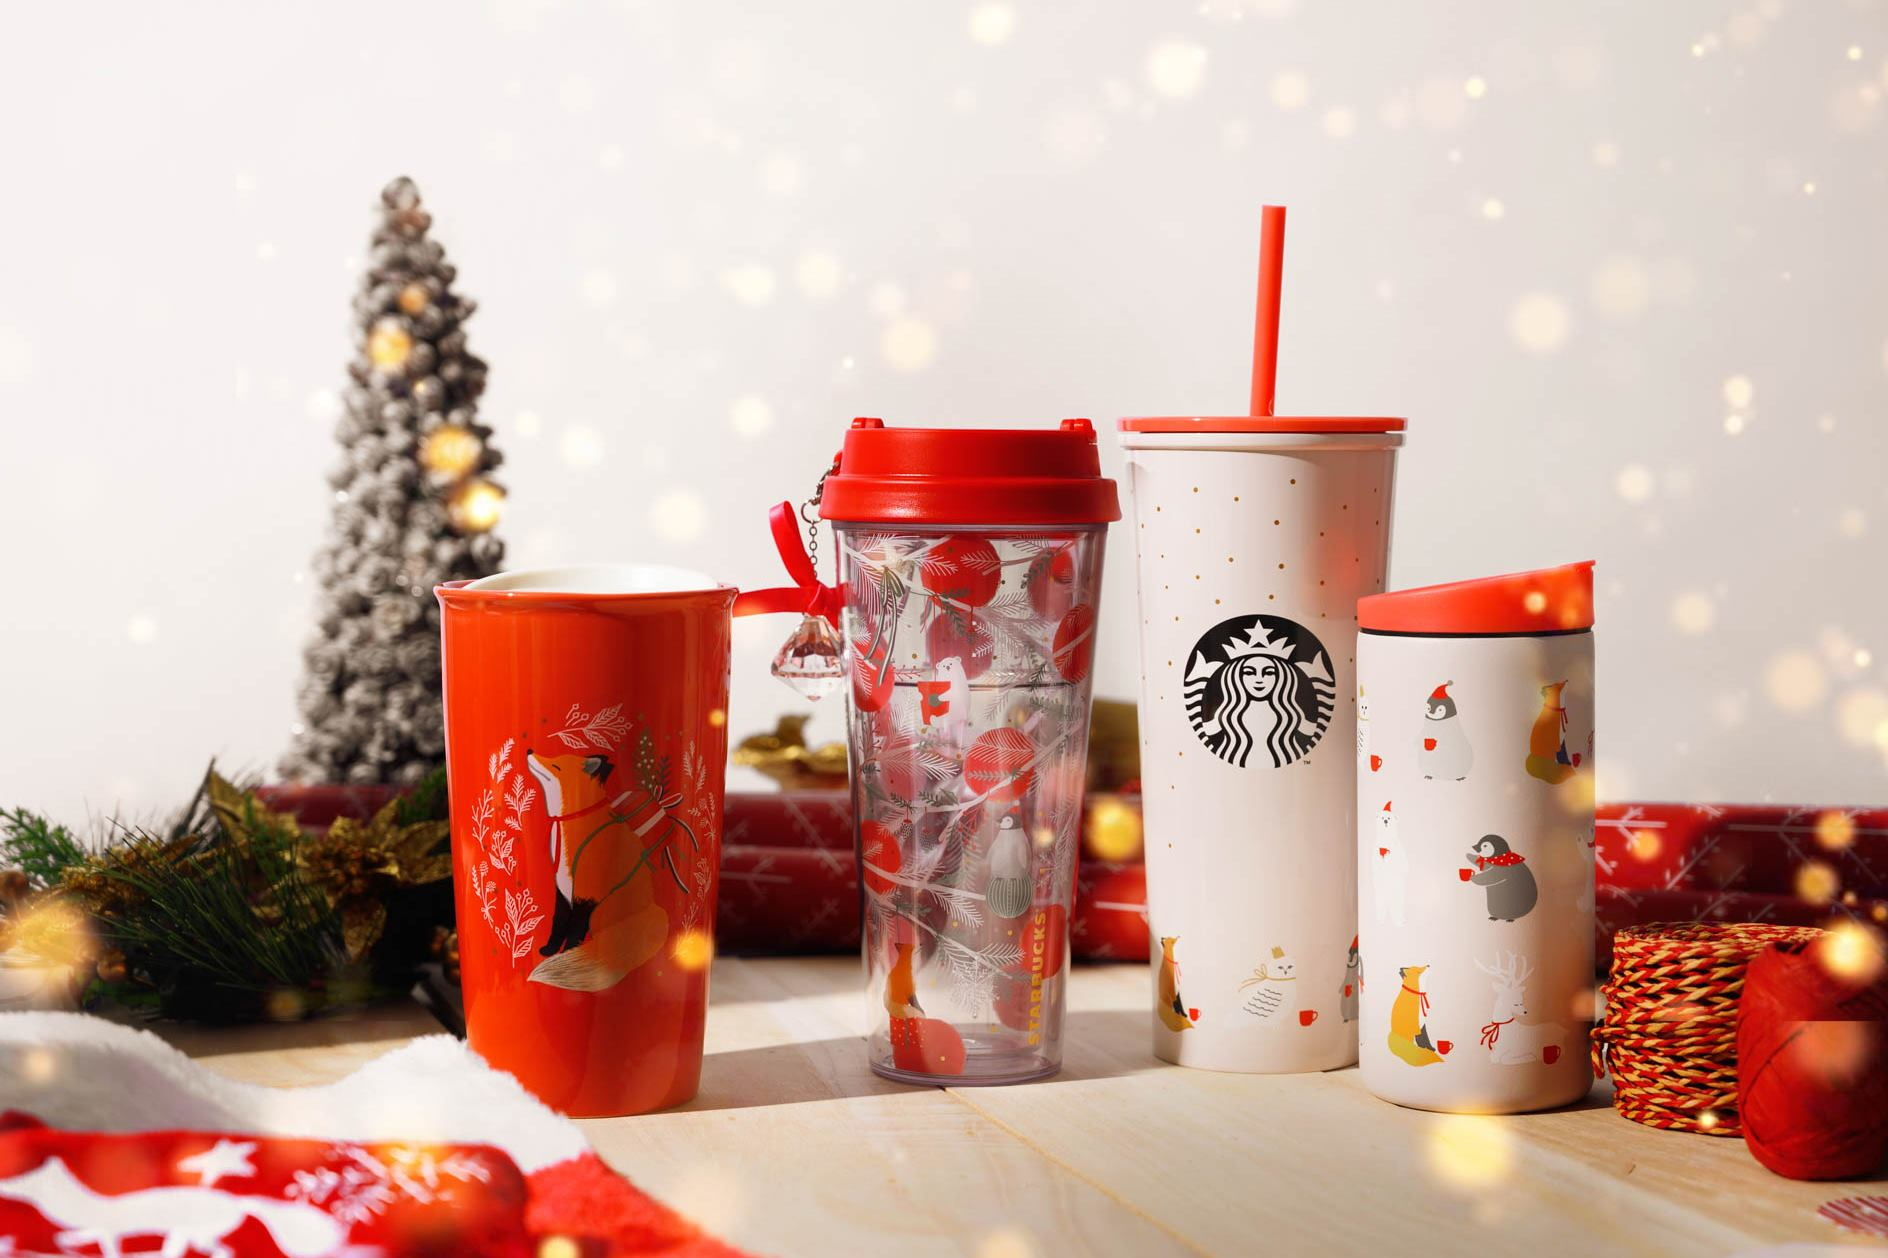 starbucks christmas merch